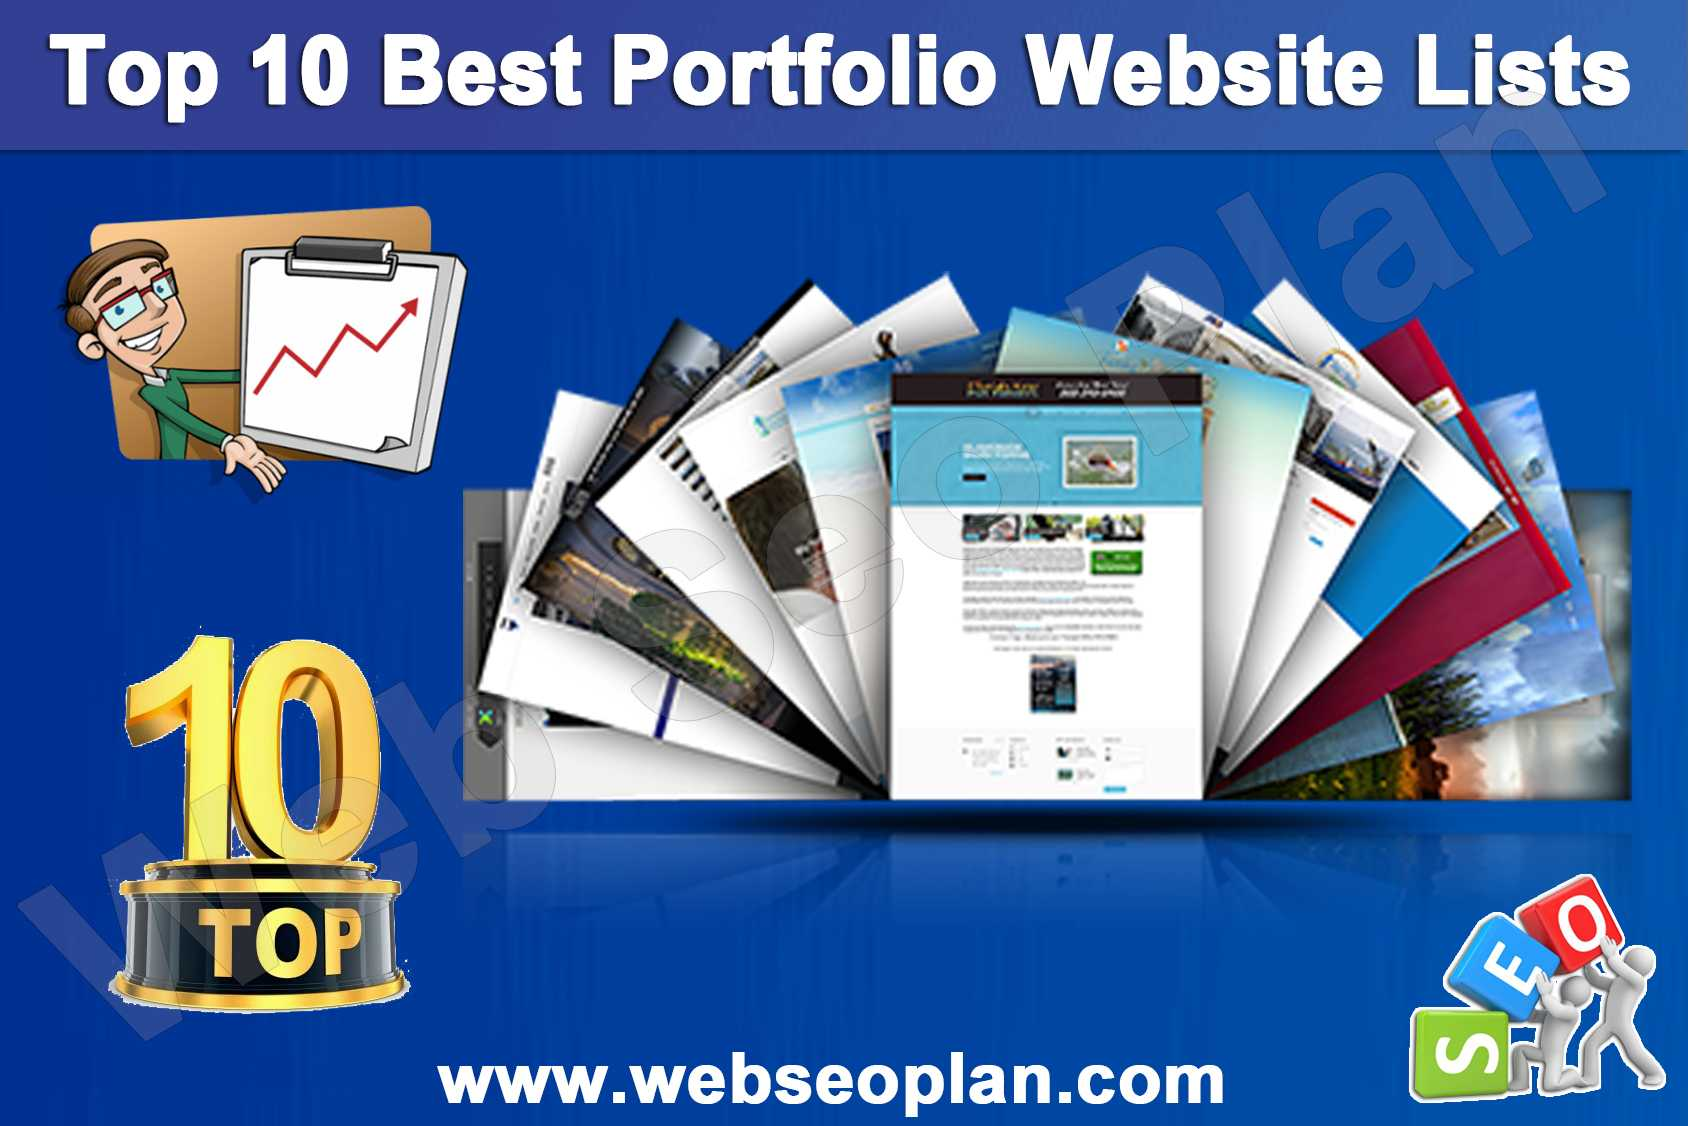 Top 10 Best Portfolio Site Lists